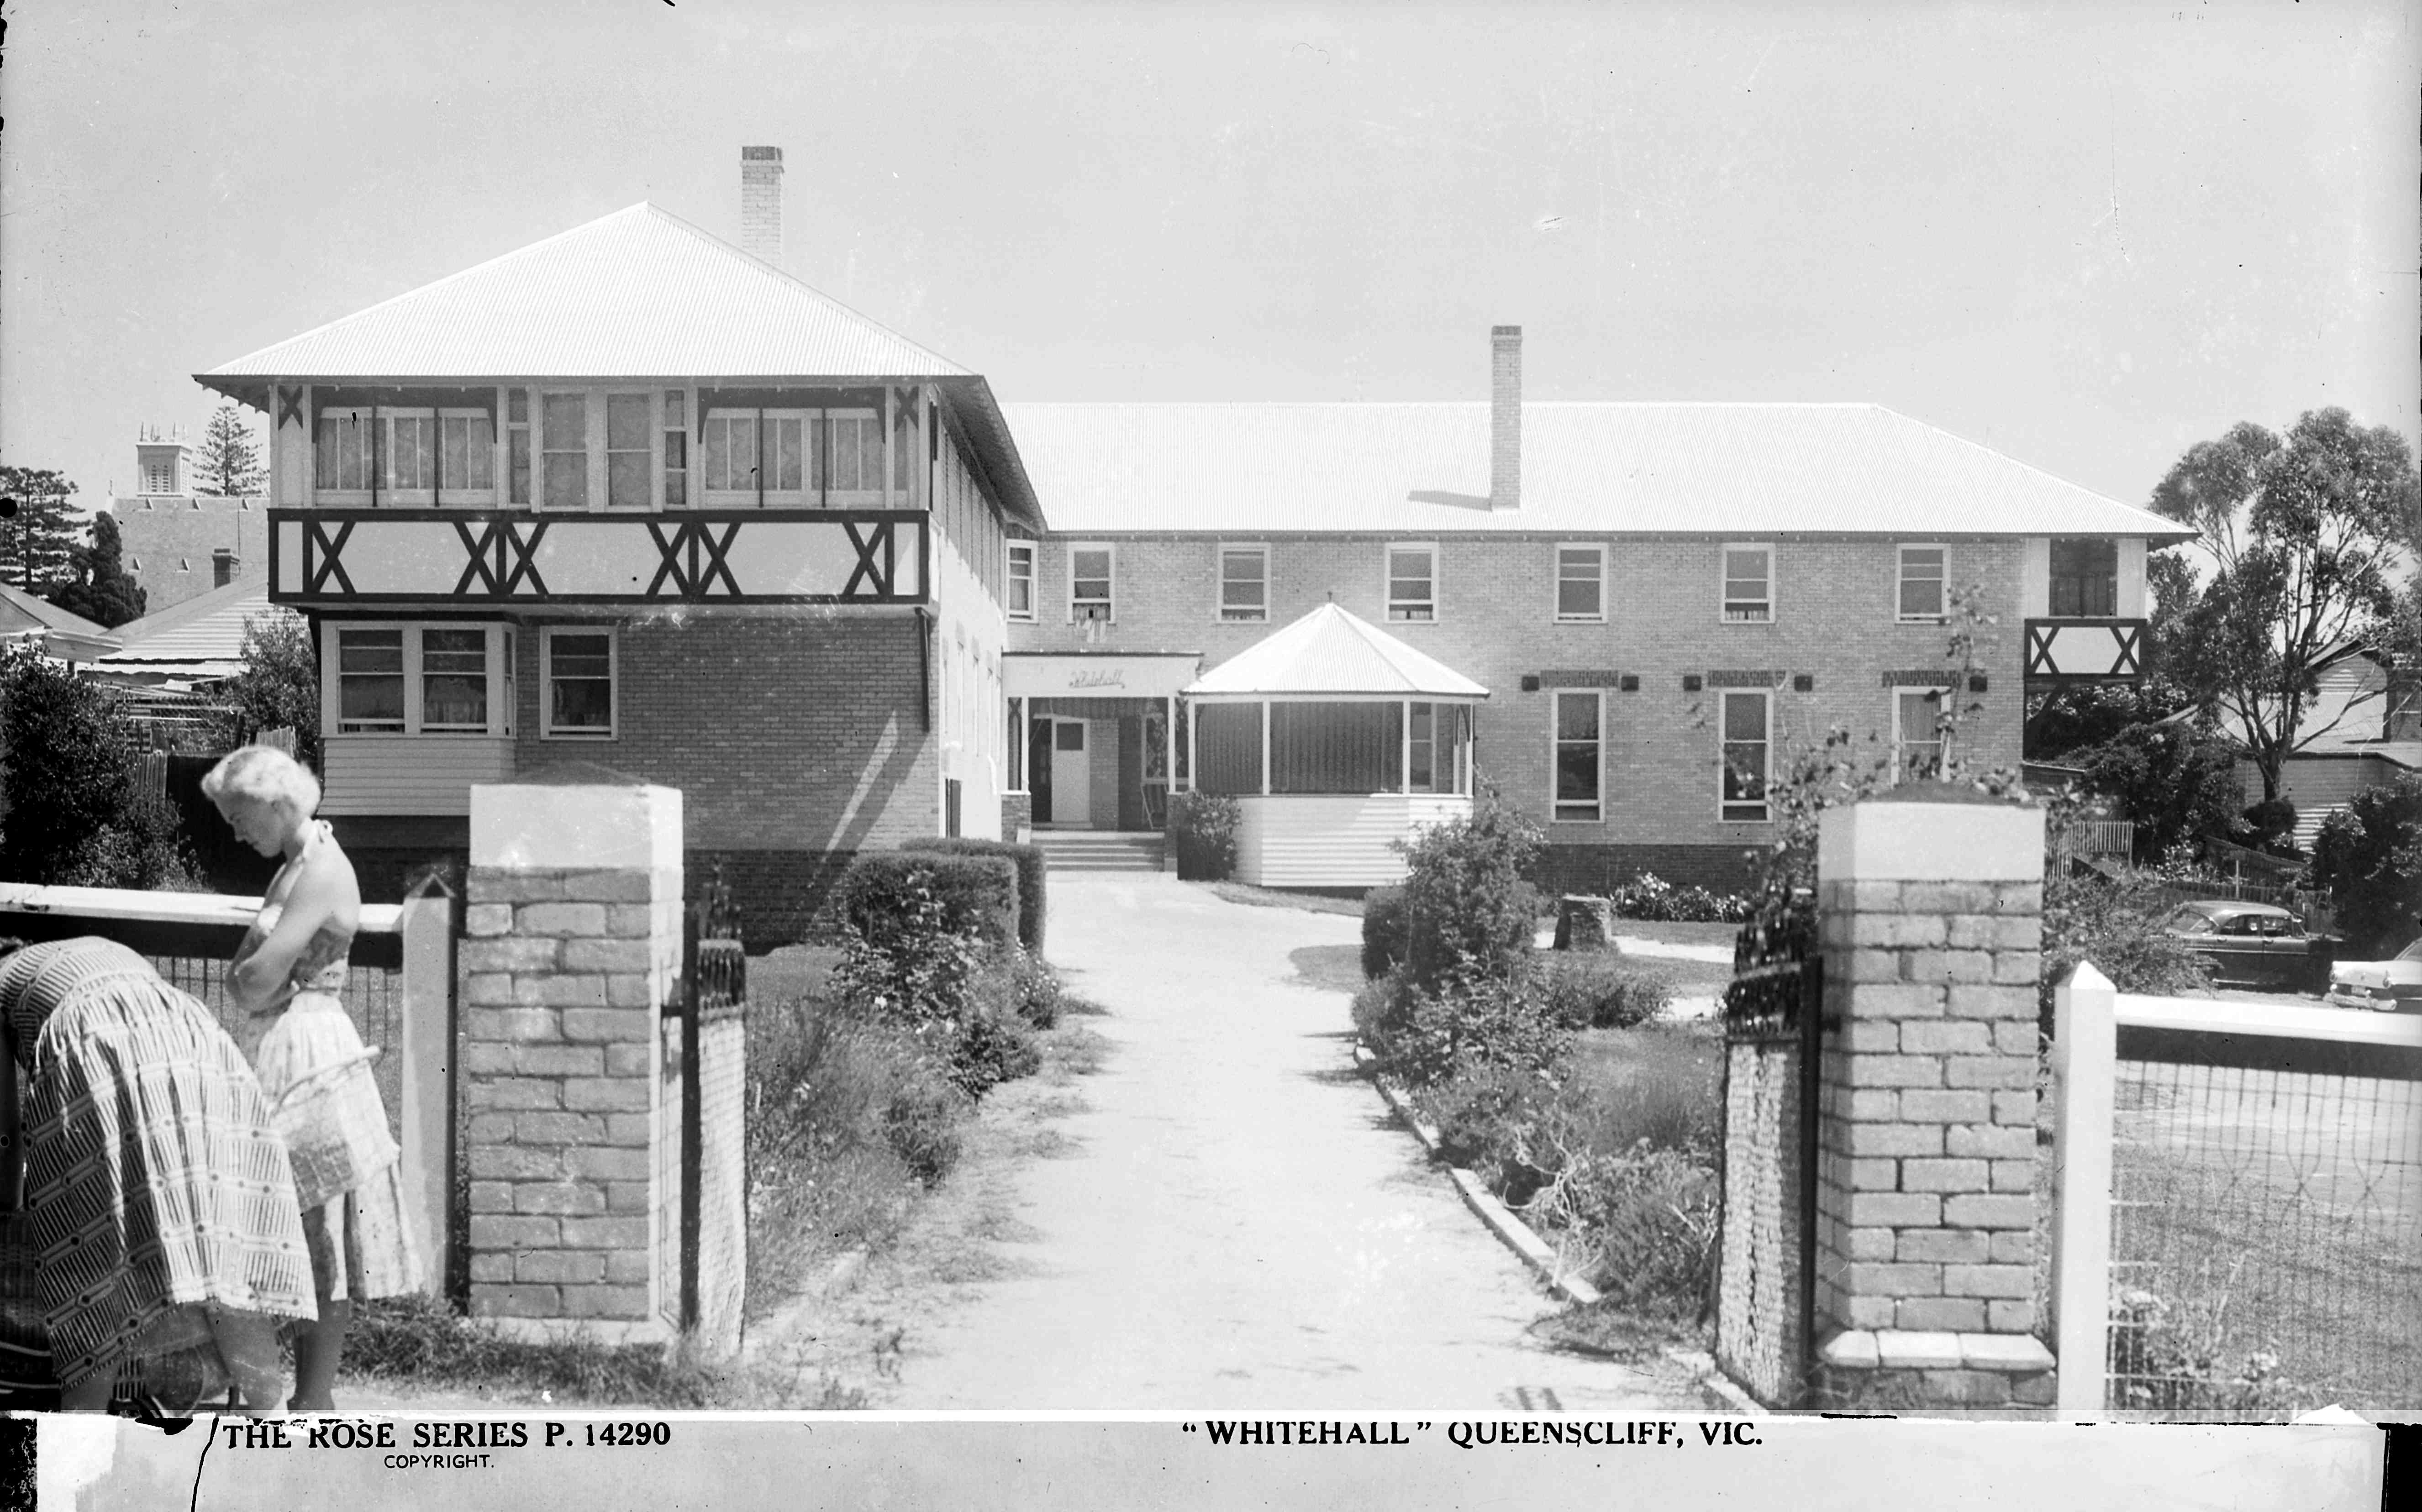 Queenscliff: Whitehall Guesthouse (groups only - exclusive use)